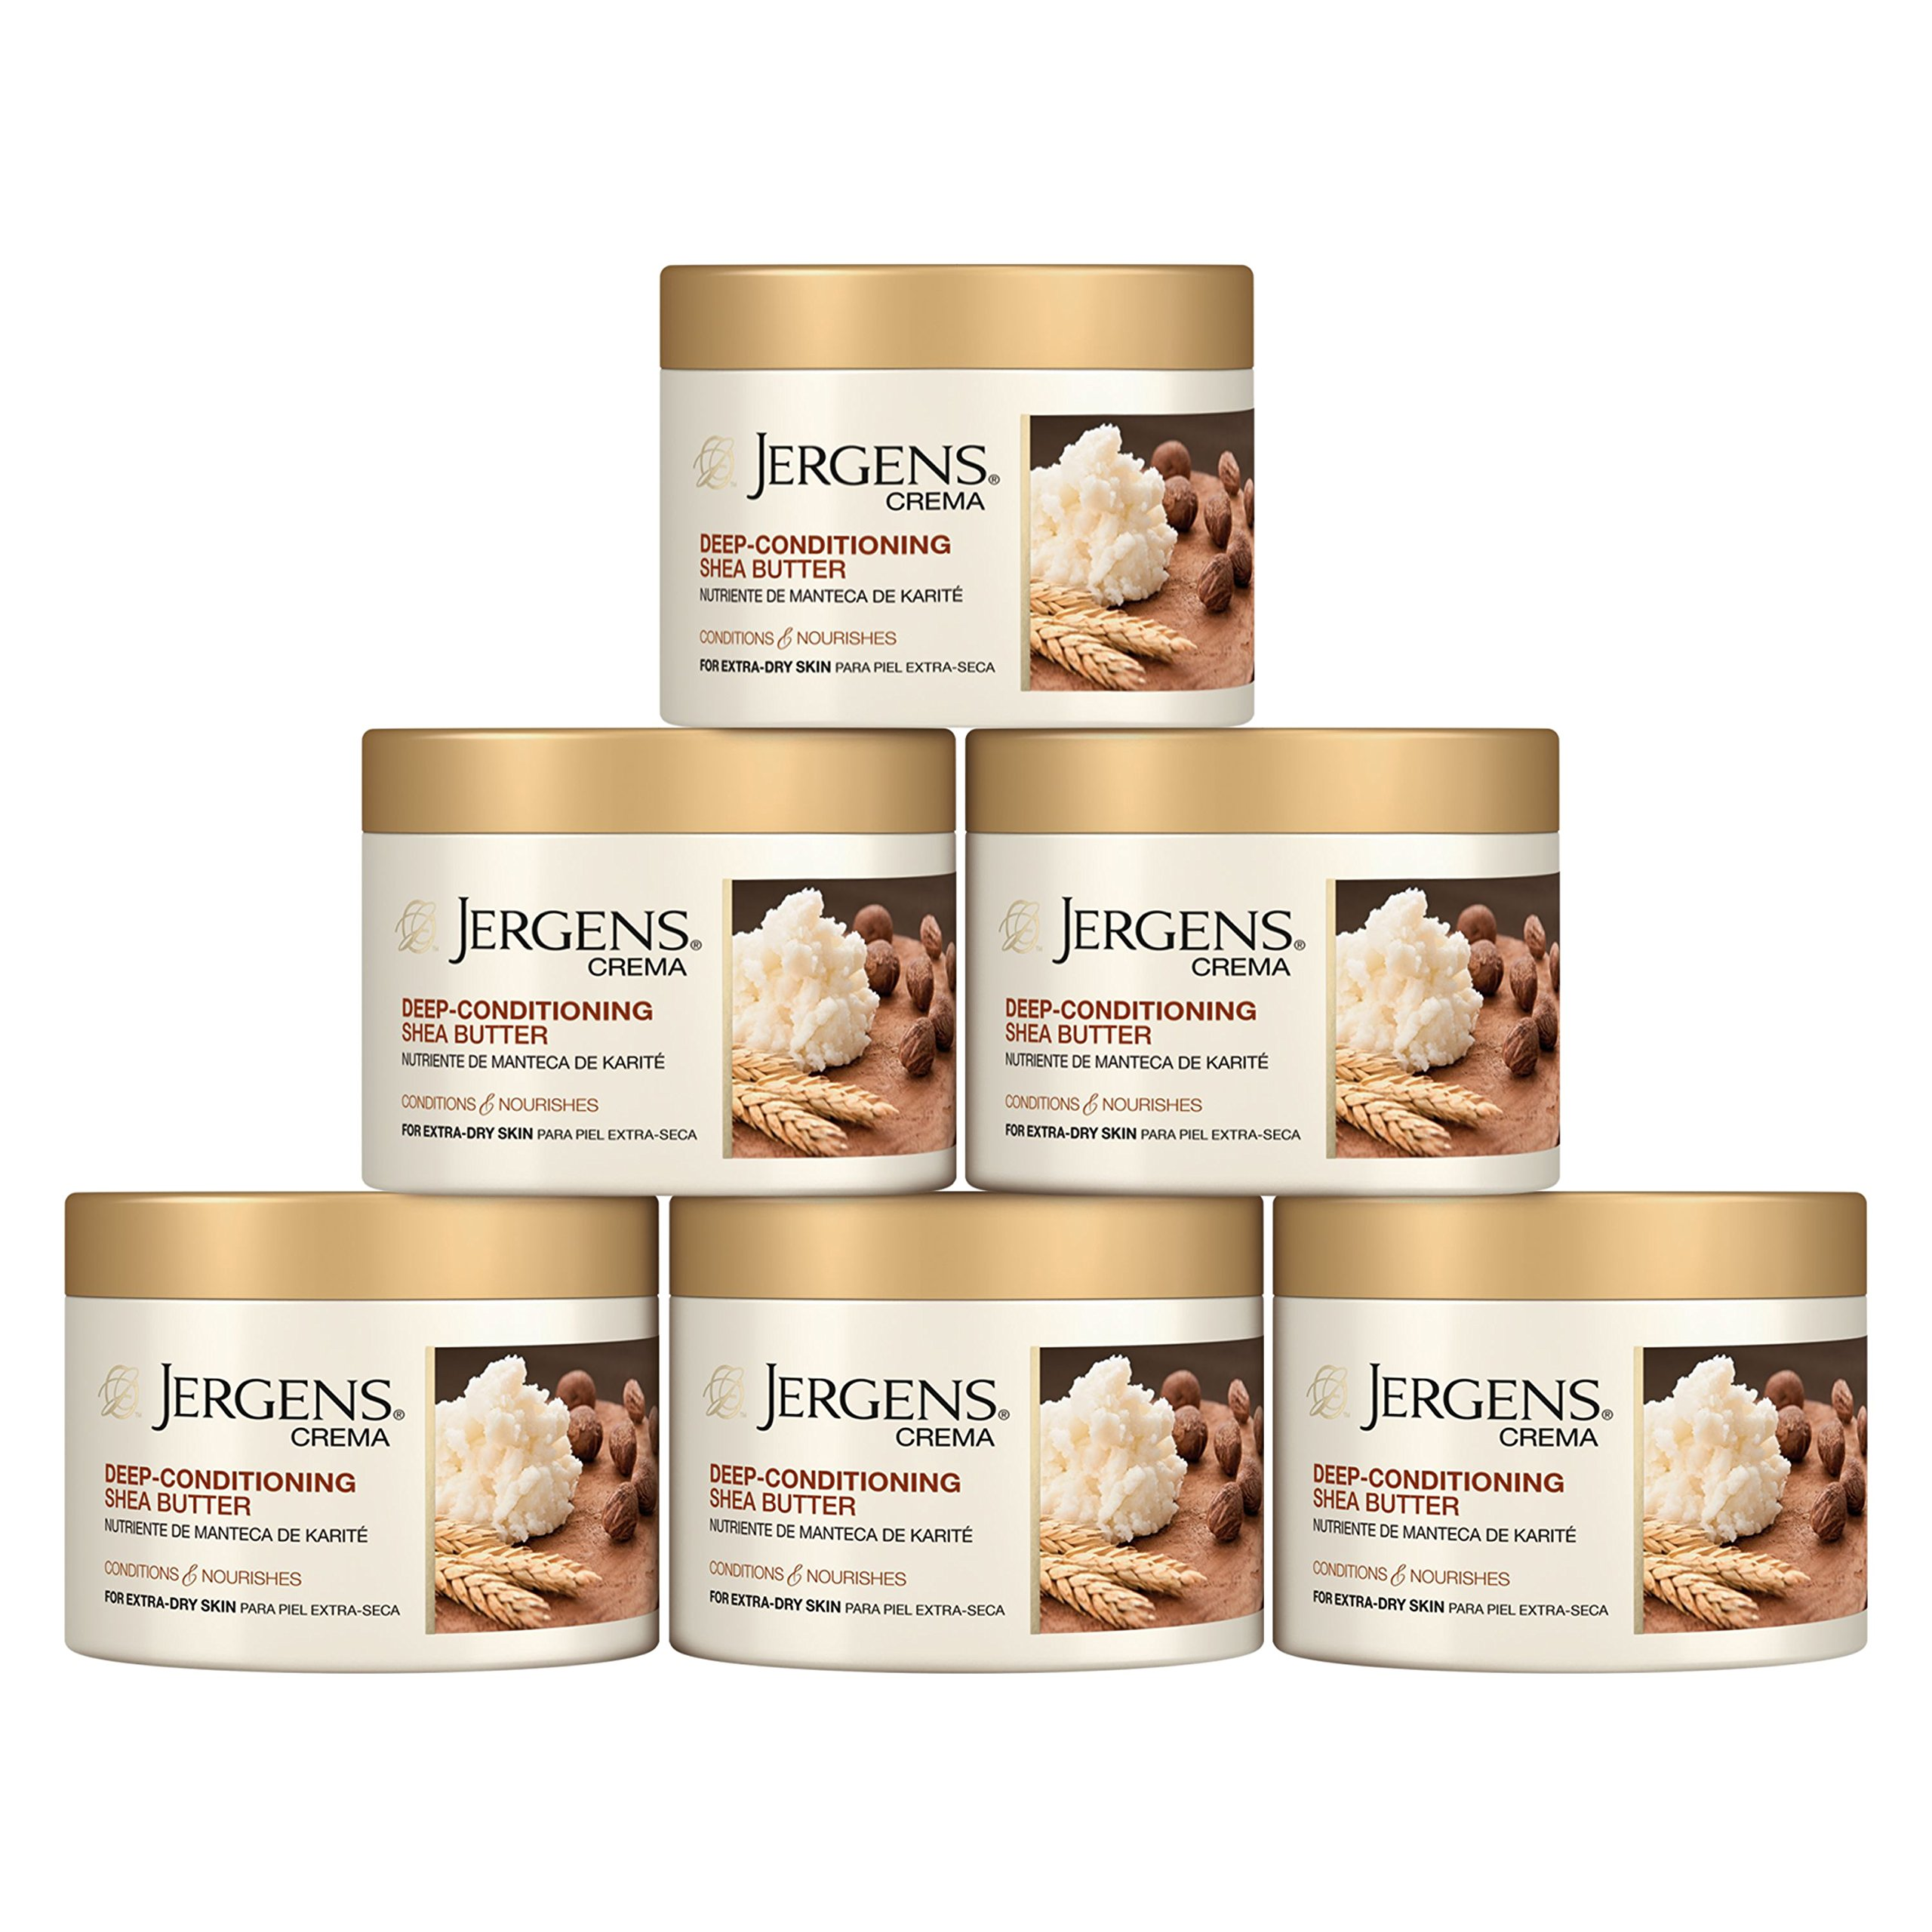 Jergens Crema Deep-Conditioning Shea Butter Body Cream with Oatmeal, 8 Ounces (Pack